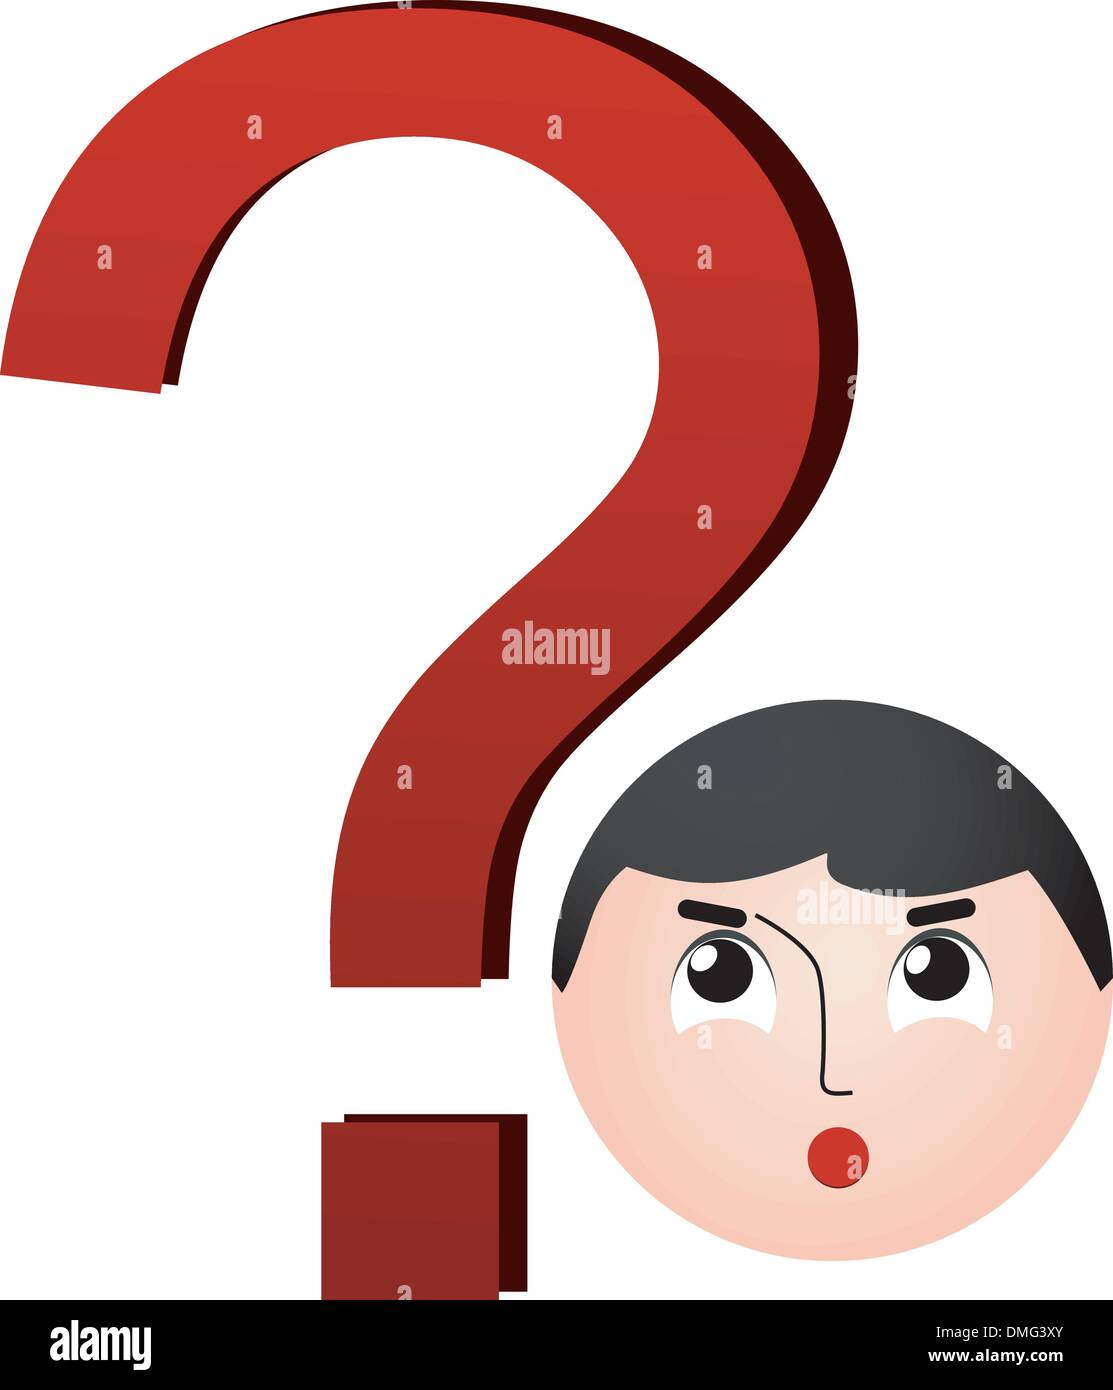 Question mark with the image of the boy's face - Stock Image